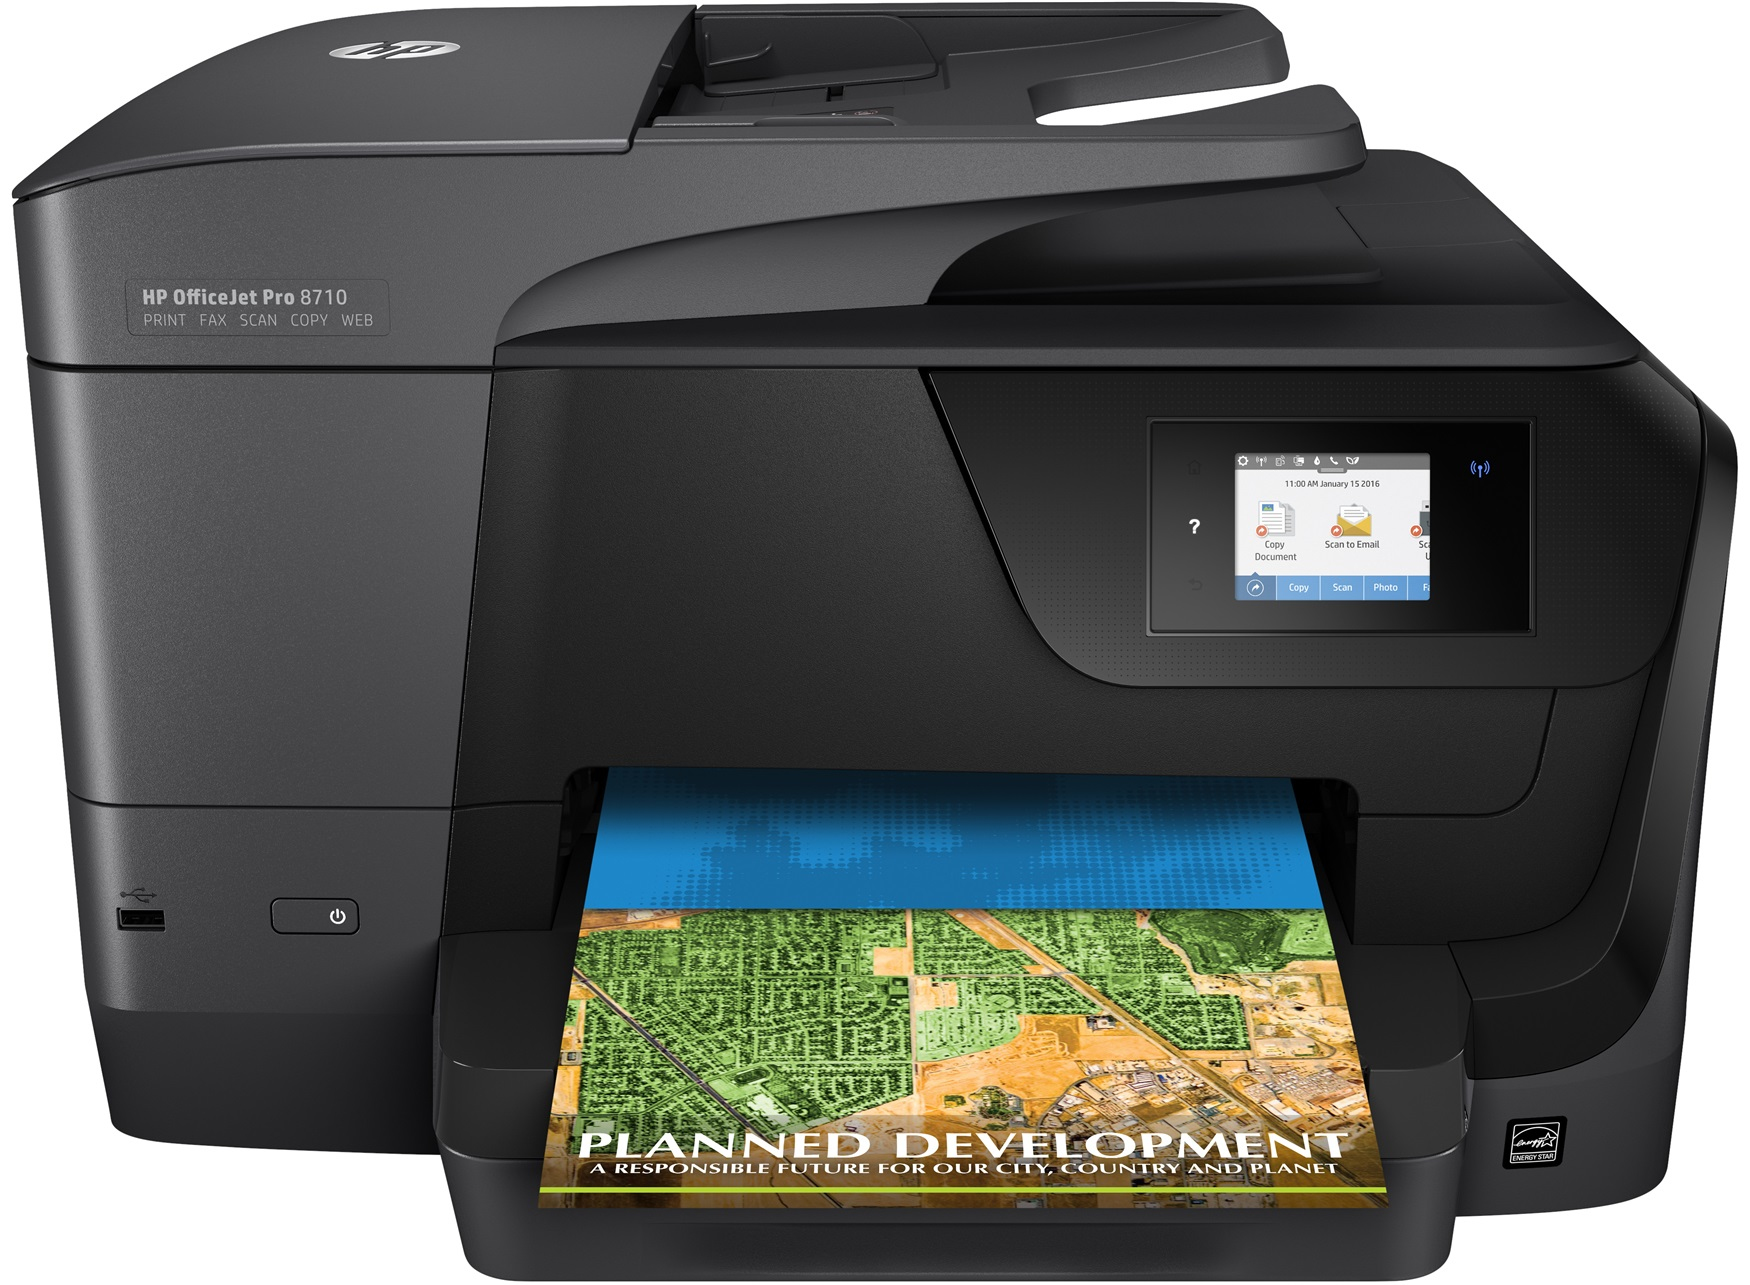 HP OfficeJet Pro 8710 e-All-in-One, Tinte, MFP, A4